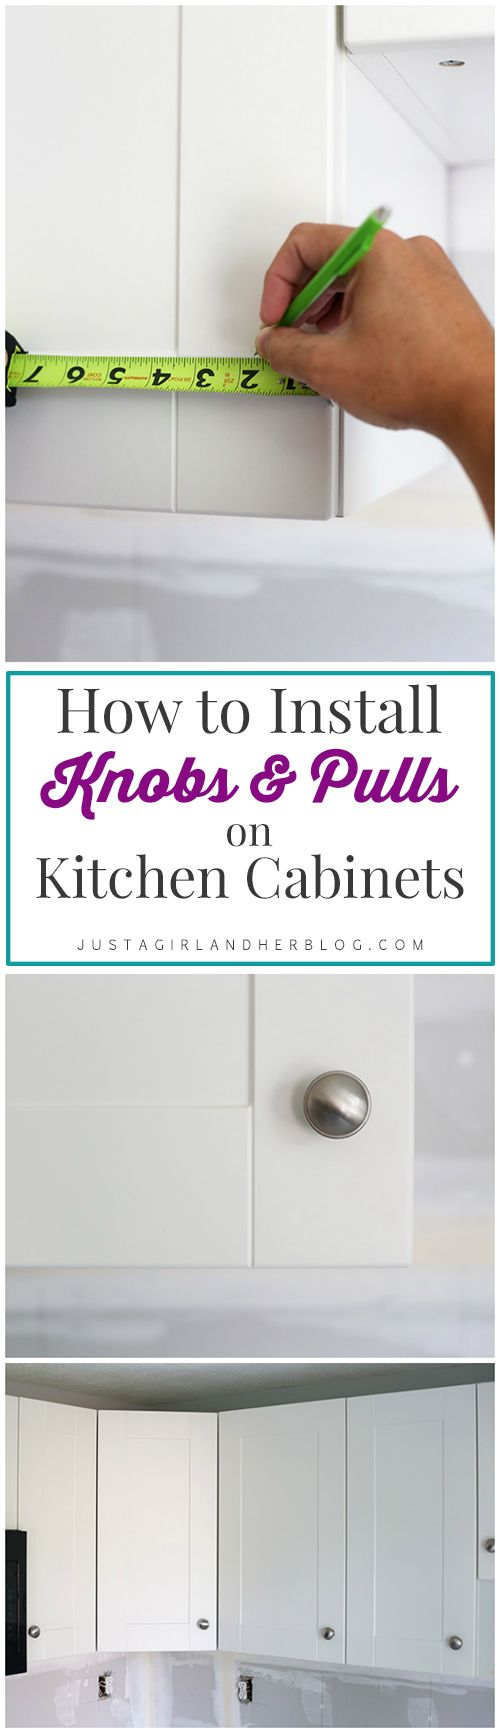 Best 25+ Kitchen cabinet knobs ideas on Pinterest | Kitchen ...